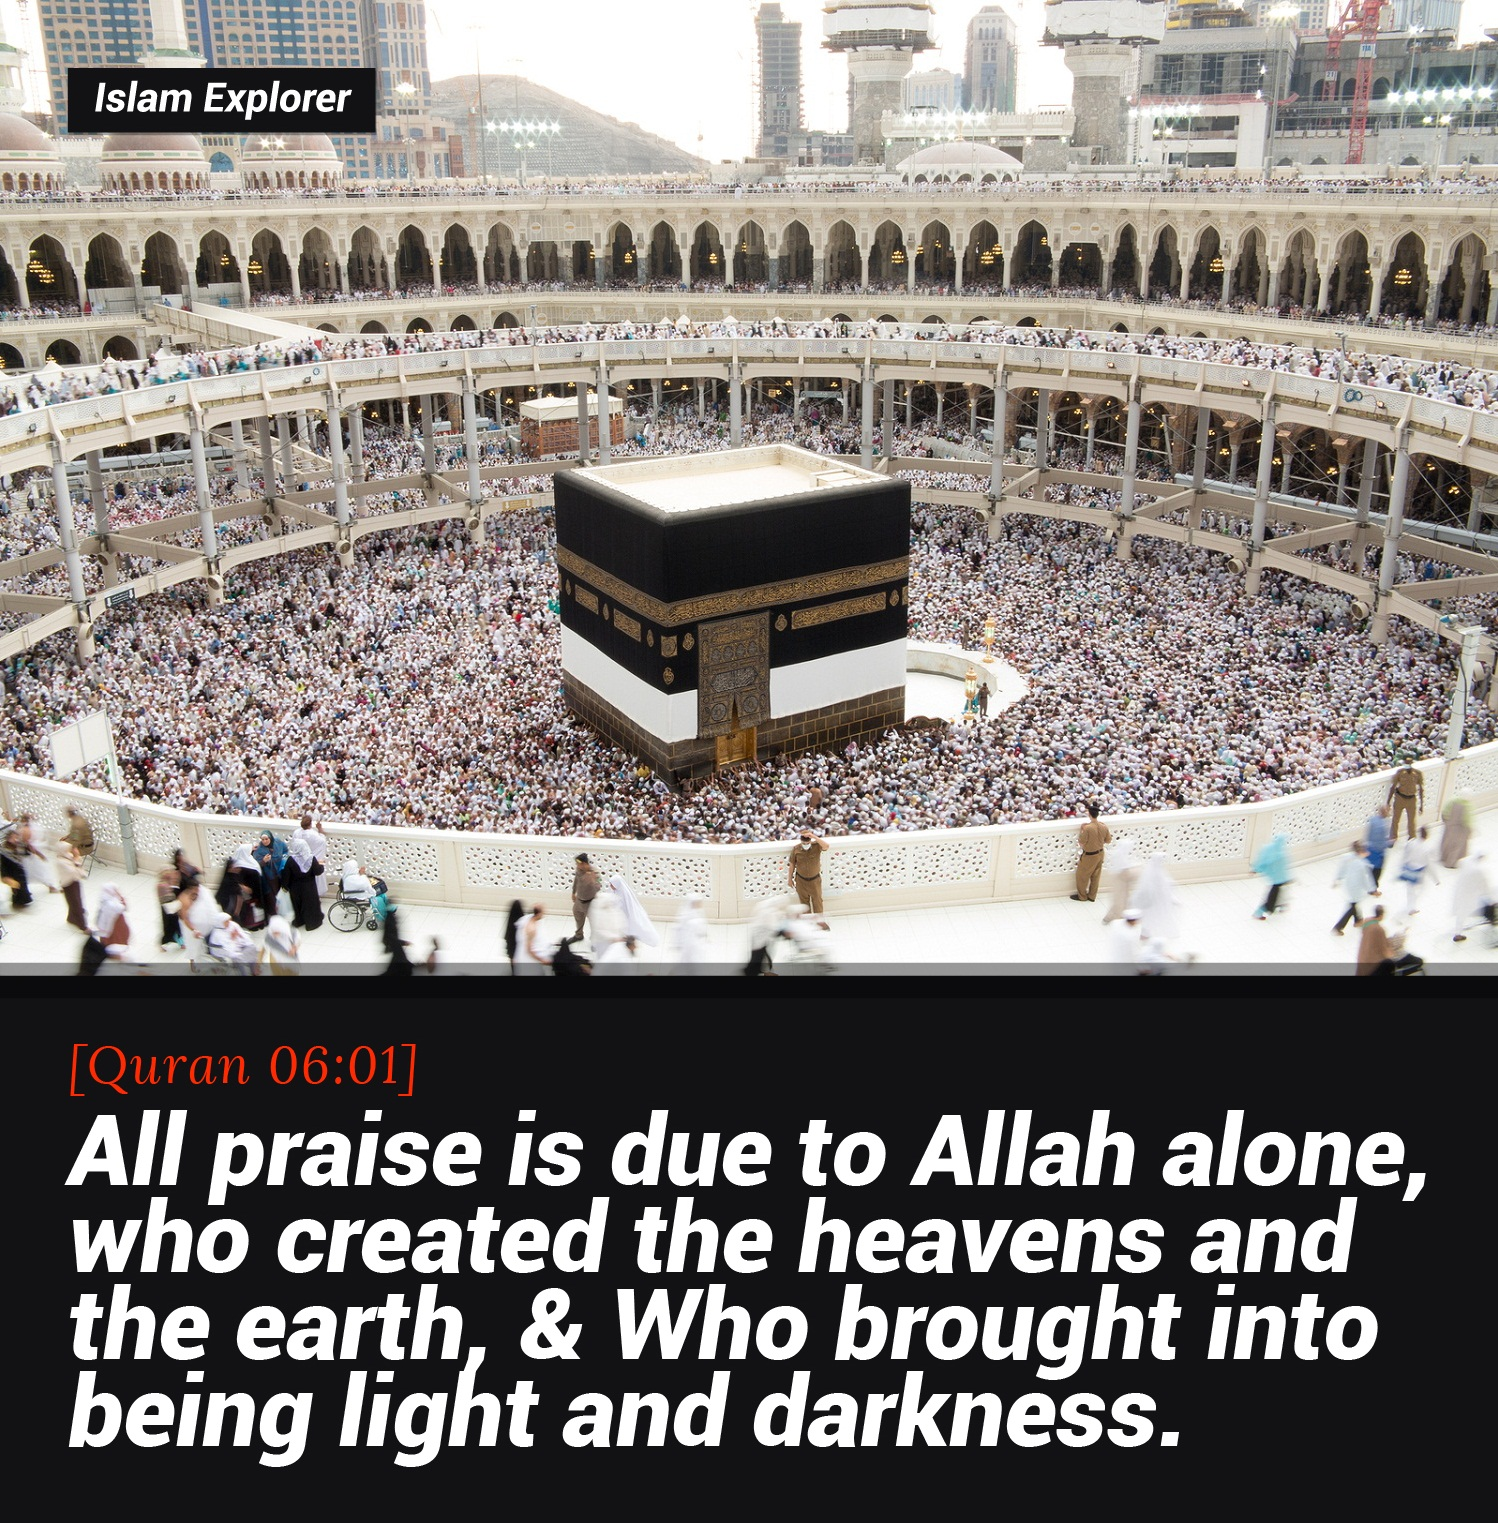 All praise is due to Allah alone